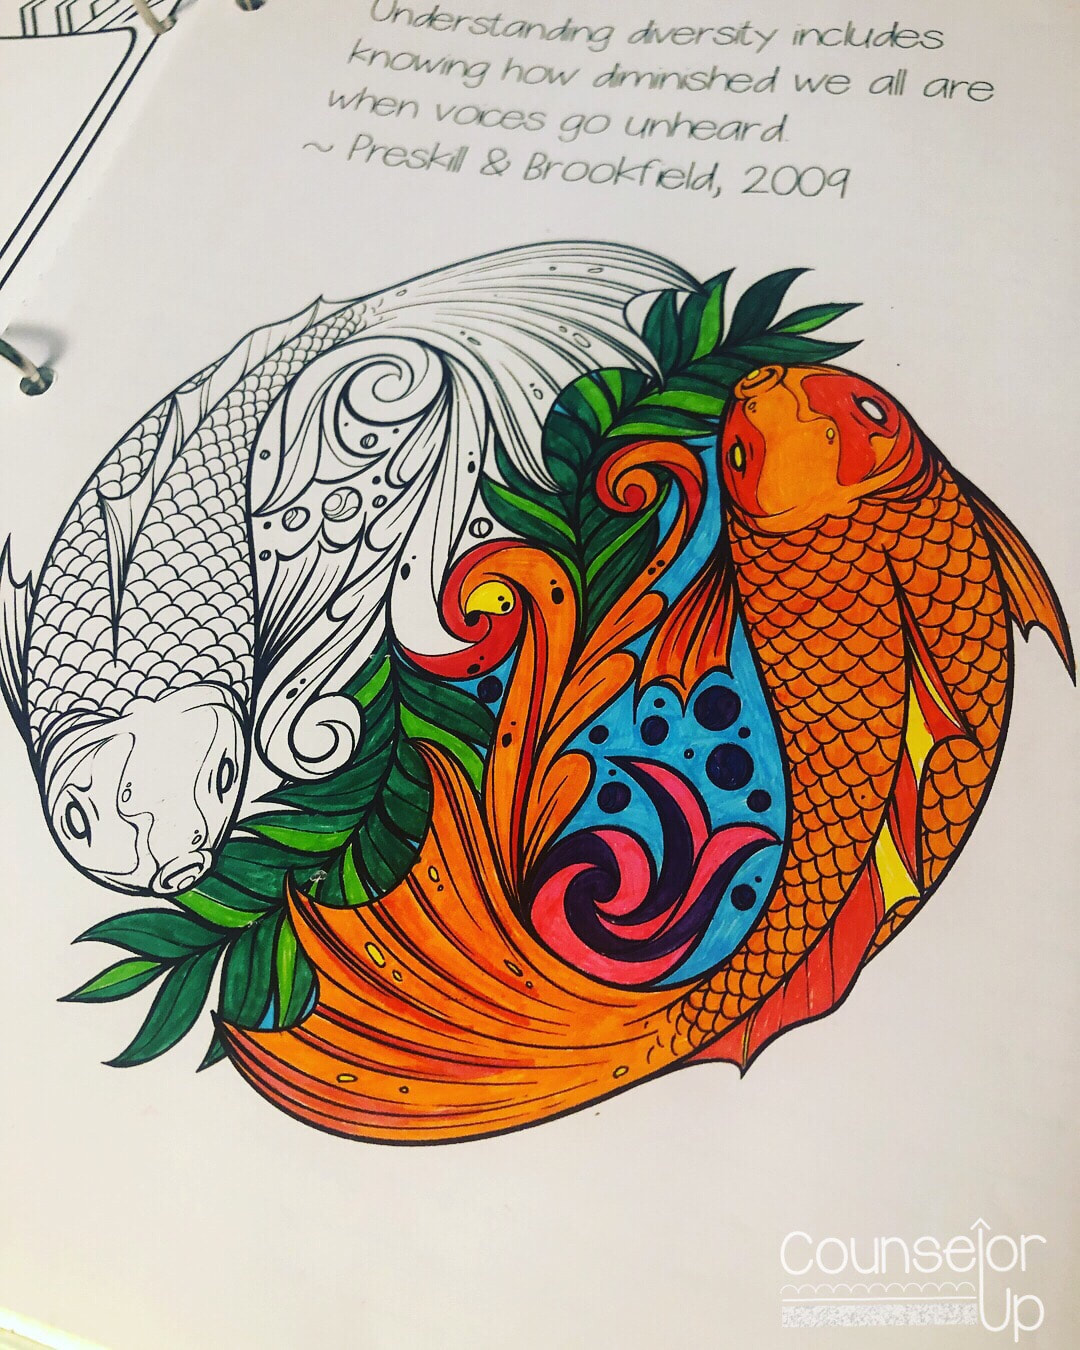 Counselor Planner 2016-17 The entire planner has lots of doodling and art areas including mandala coloring pages with quotes. Helps when you're sitting in those super long staff meetings! www.counselorup.com